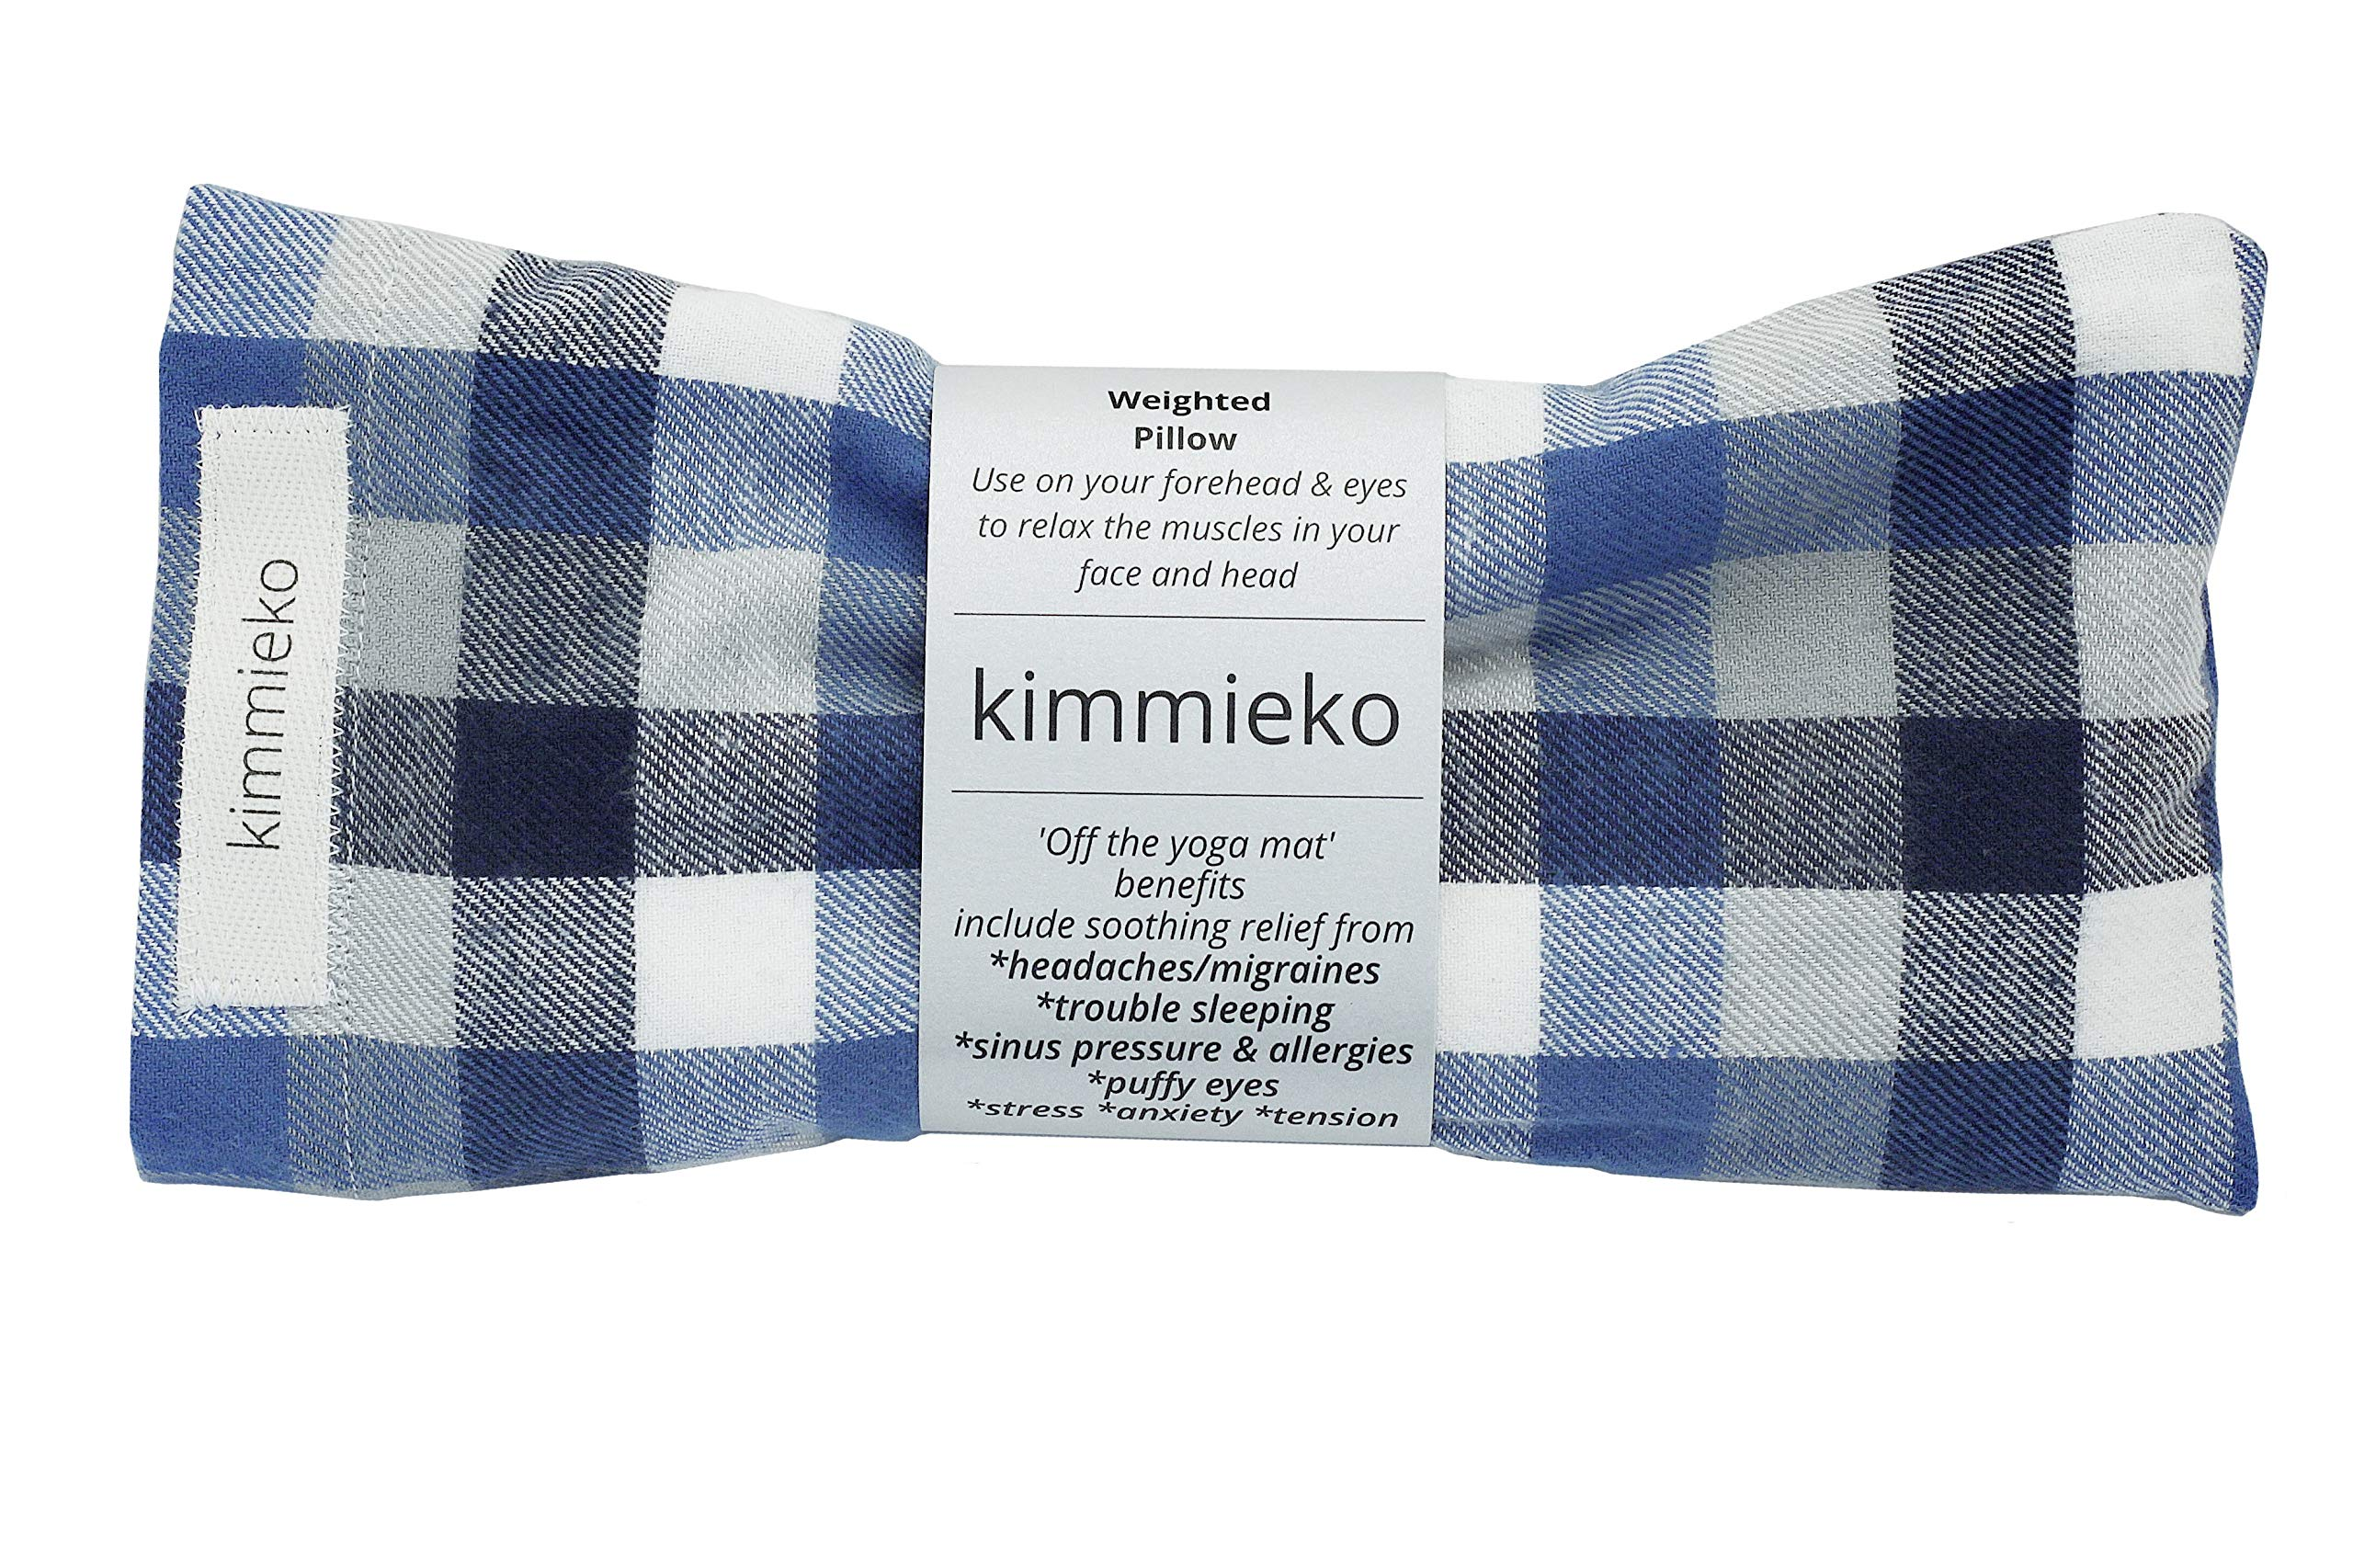 Kimmieko Weighted Spa Pillow for Eyes and Forehead | Organic Lavender and Flax Seed insert | Soothing Relief for Headaches, Sinus Pressure,Anxiety and Stress|Handmade in the USA(Blue Striped Flannel)